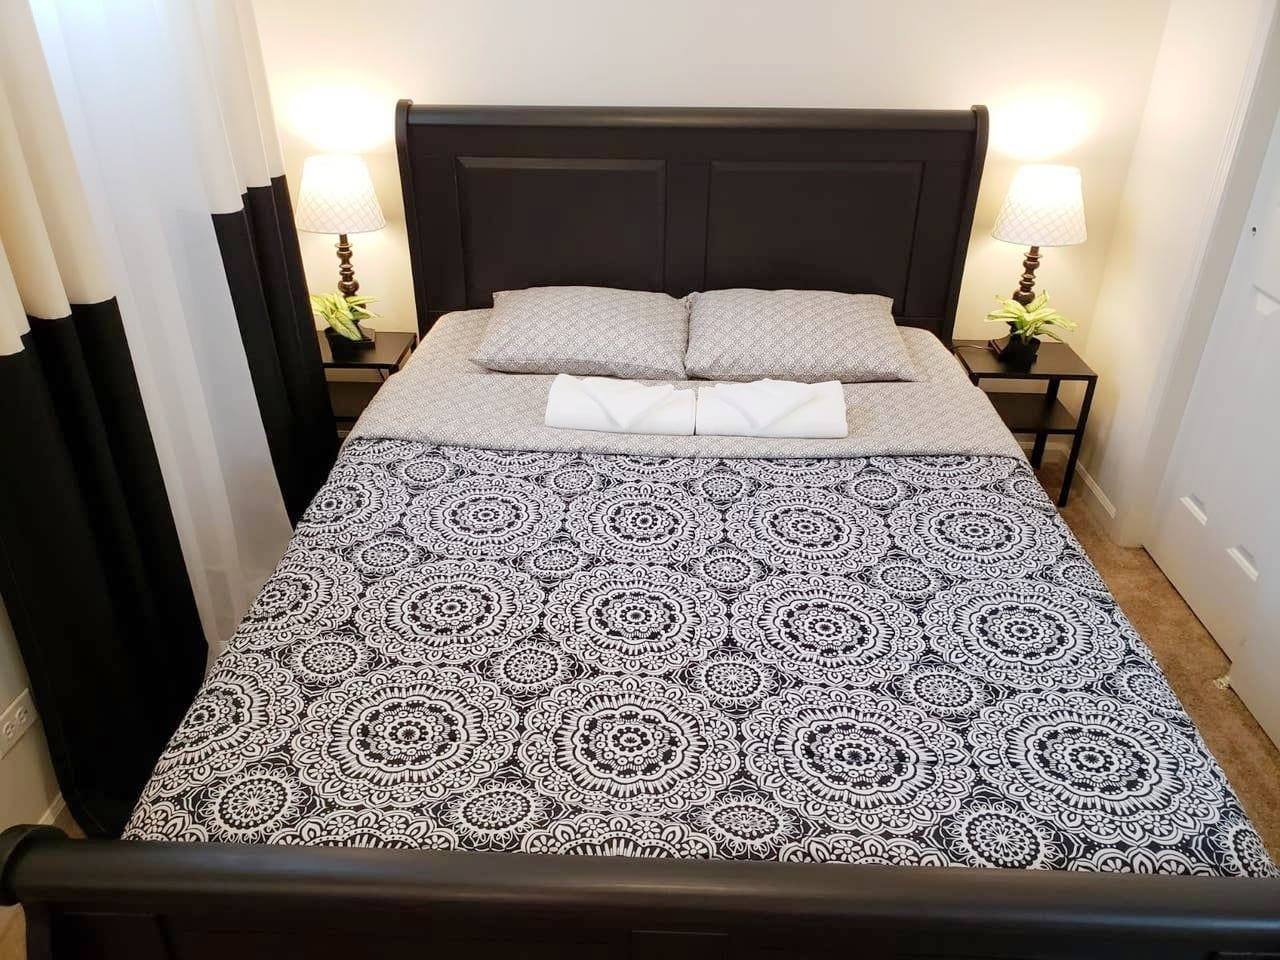 This is exactly how you will find your room when you check-in. The 1st bed is queen-sized with GREEN TEA & ALOE memory foam mattress. Fresh linens, towels and washcloths are provided and will be on your bed upon arrival.